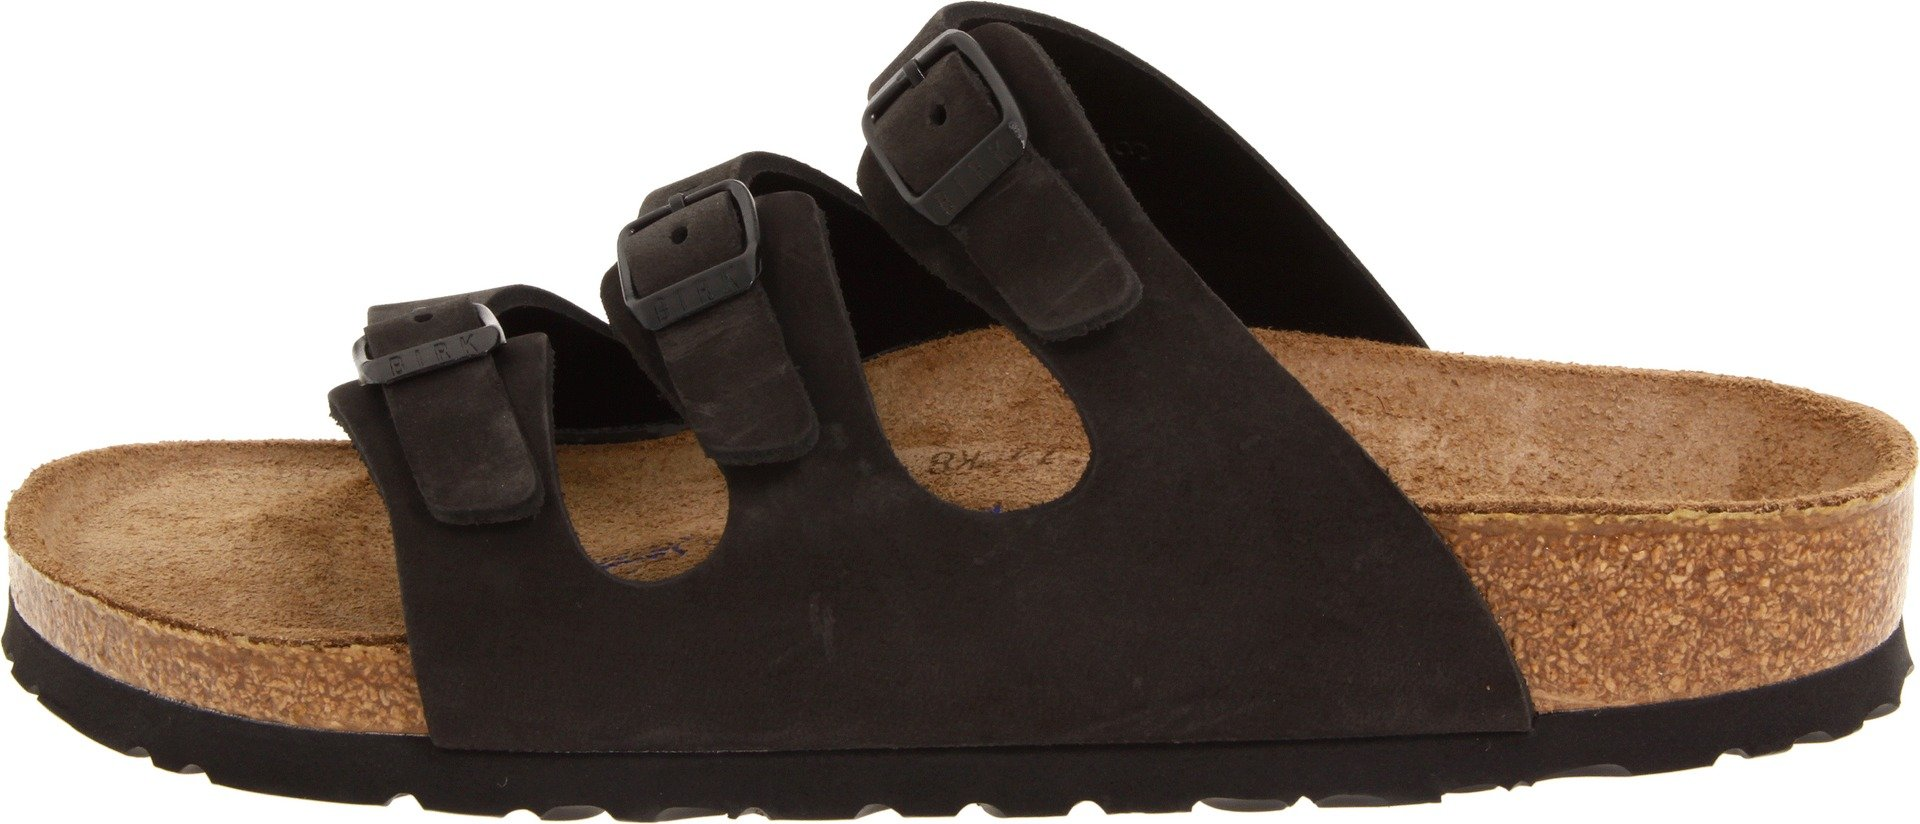 Birkenstock Women's Florida Soft Footbed Birko-Flor  Black Nubuck Sandals - 37 M EU / 6-6.5 B(M) US by Birkenstock (Image #5)